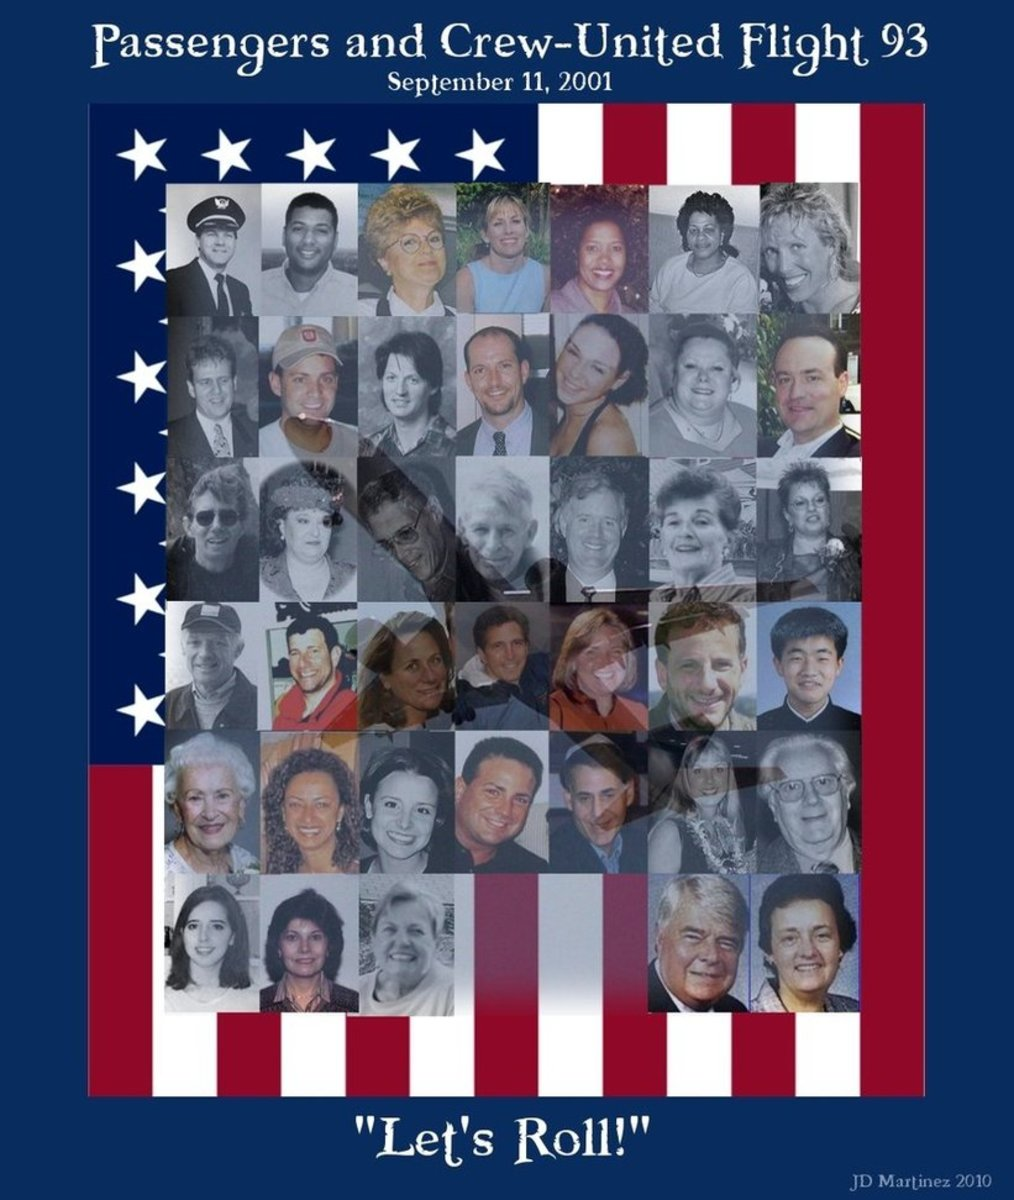 The Heroes of Flight 93